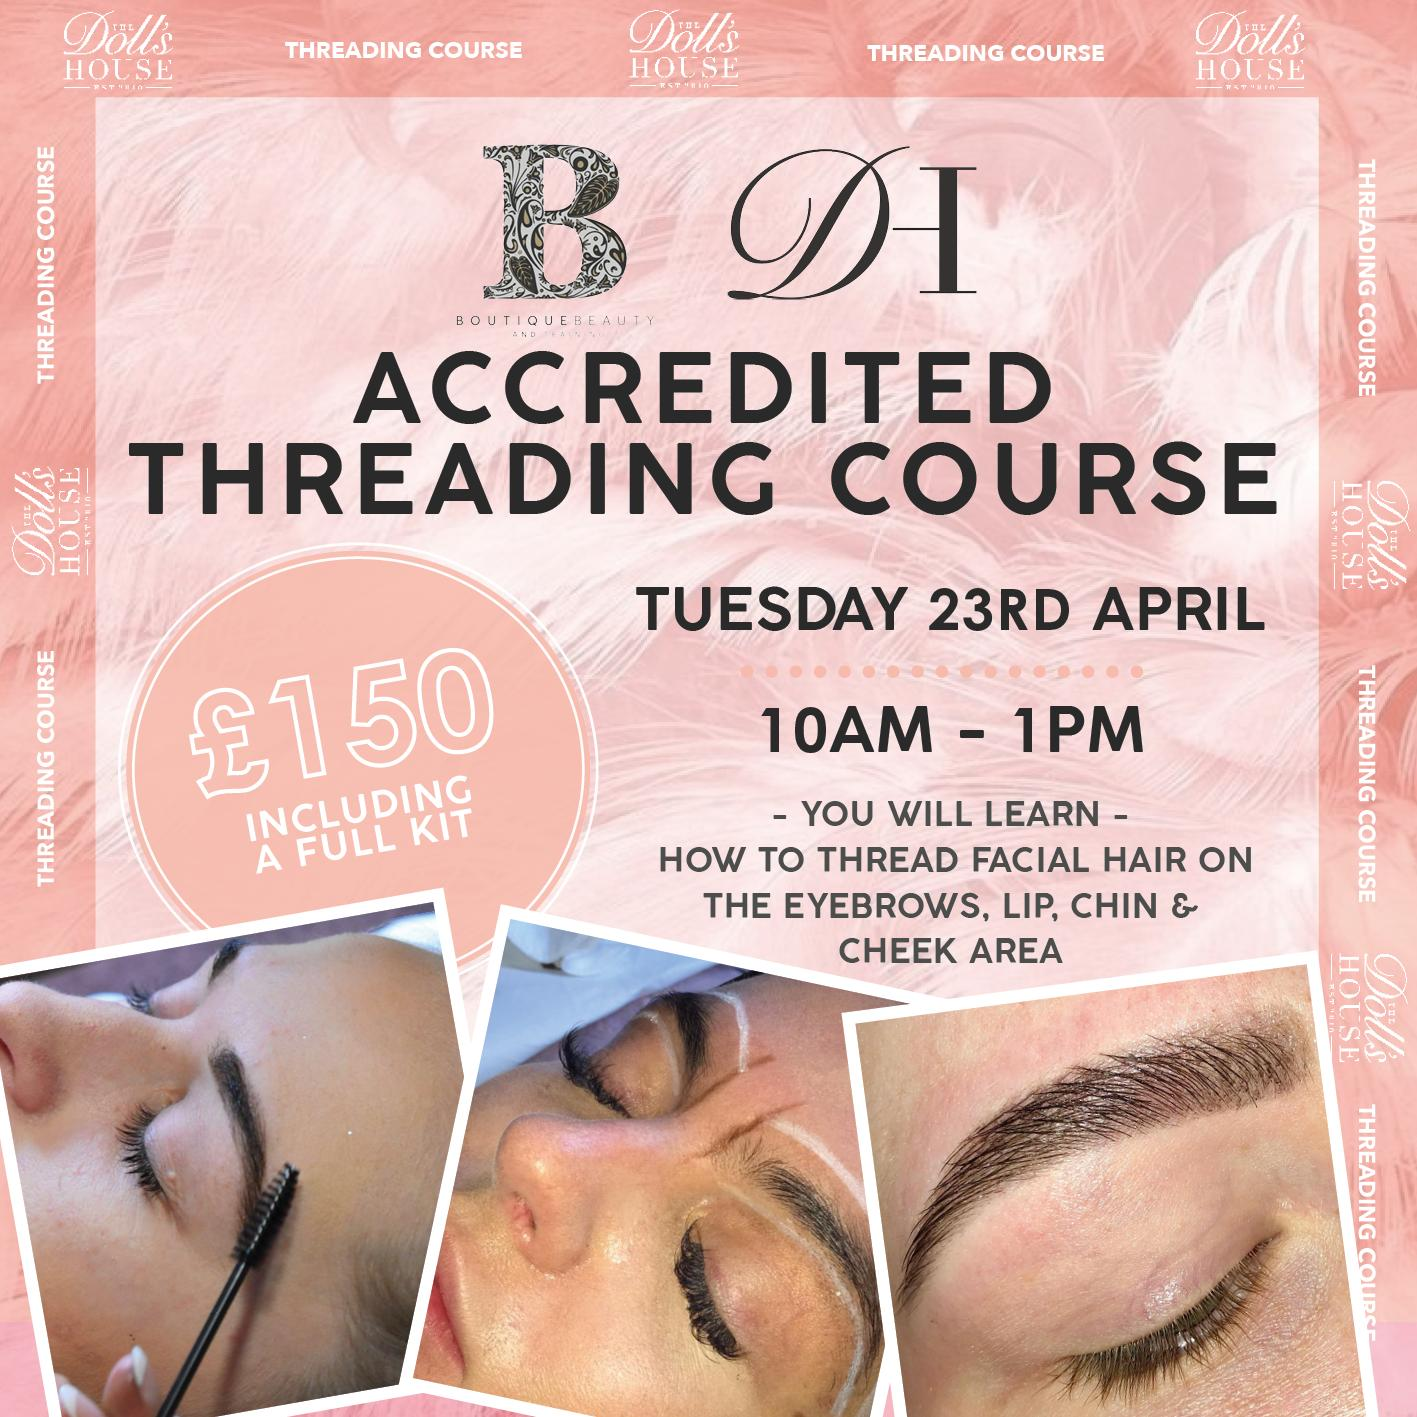 FULLY ACCREDITED THREADING COURSE